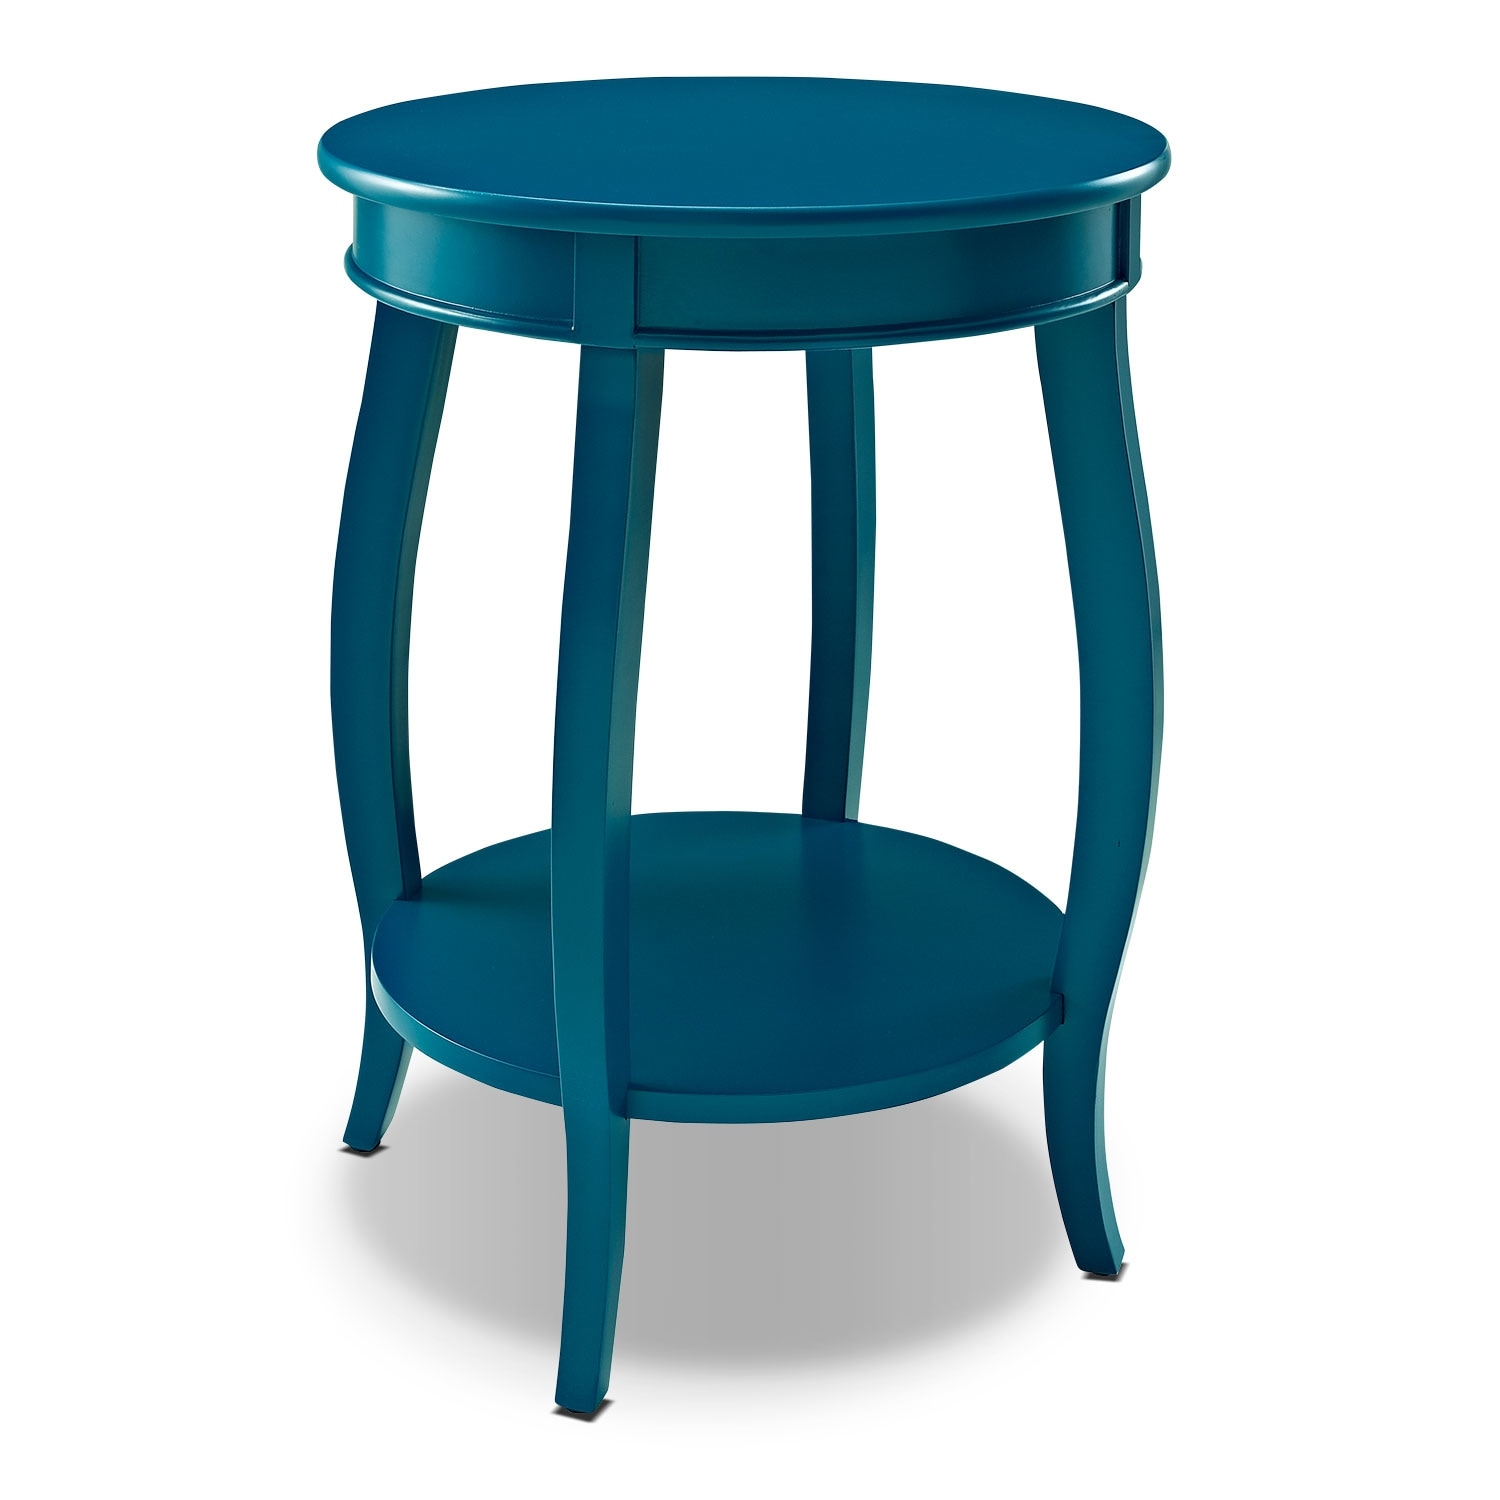 Accent and Occasional Furniture - Sydney Accent Table - Teal